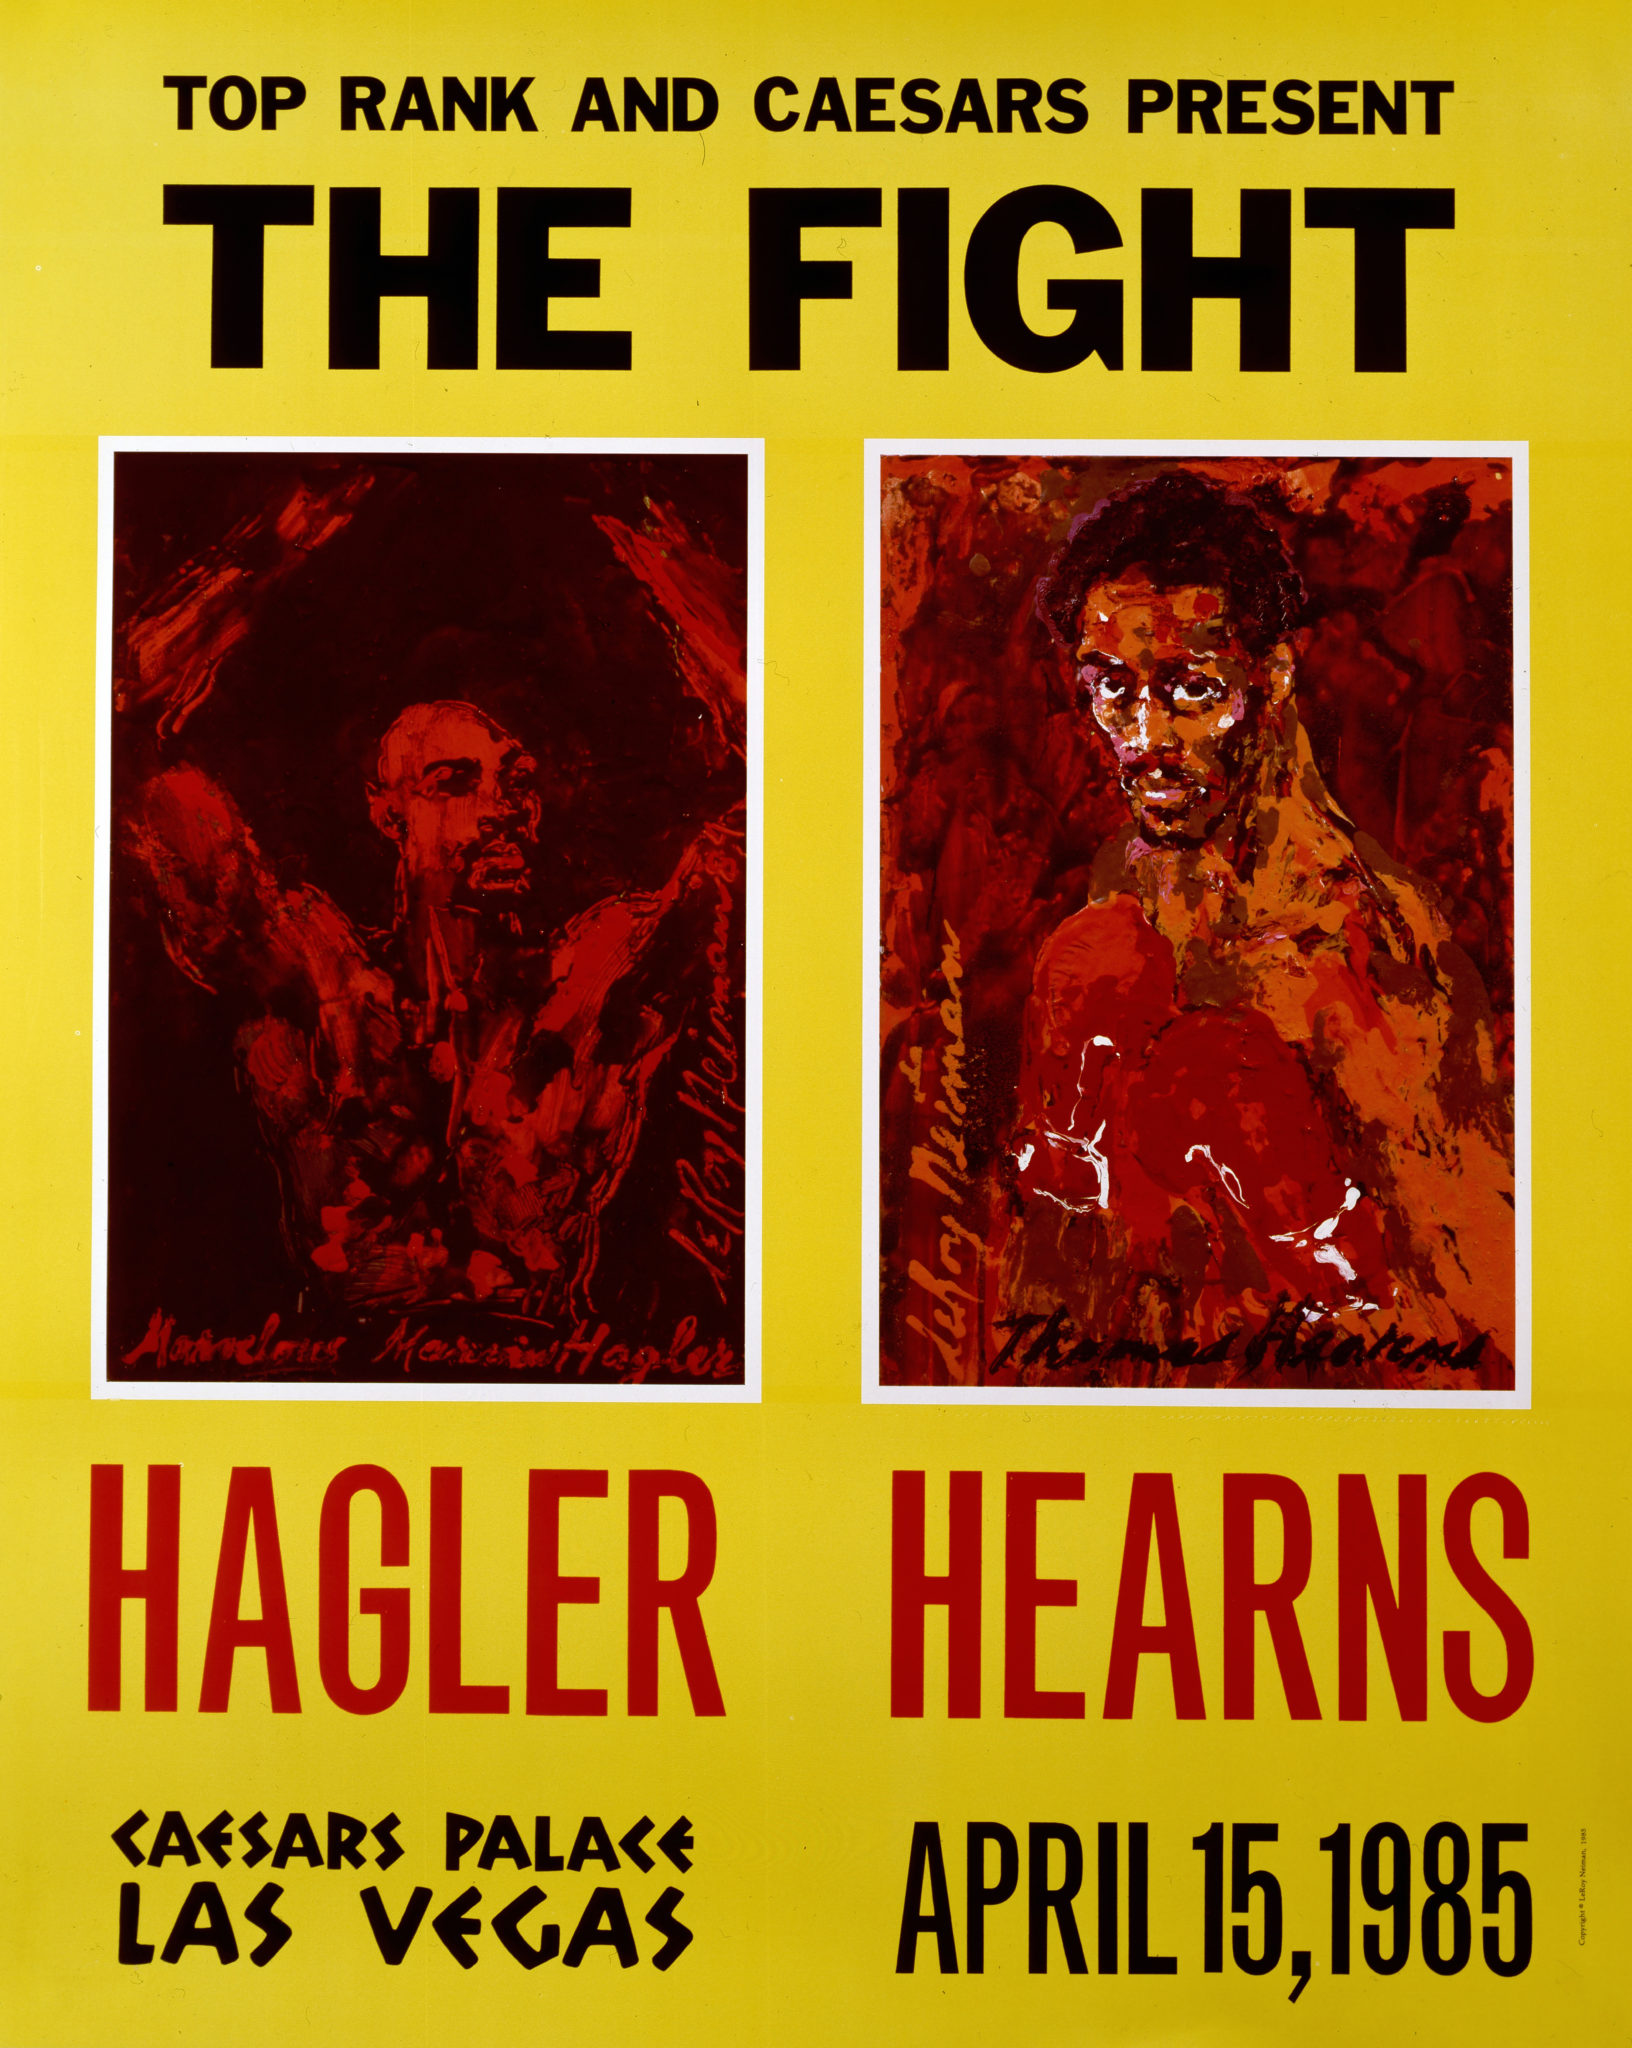 Hagler vs. Hearns 1985 Boxing poster